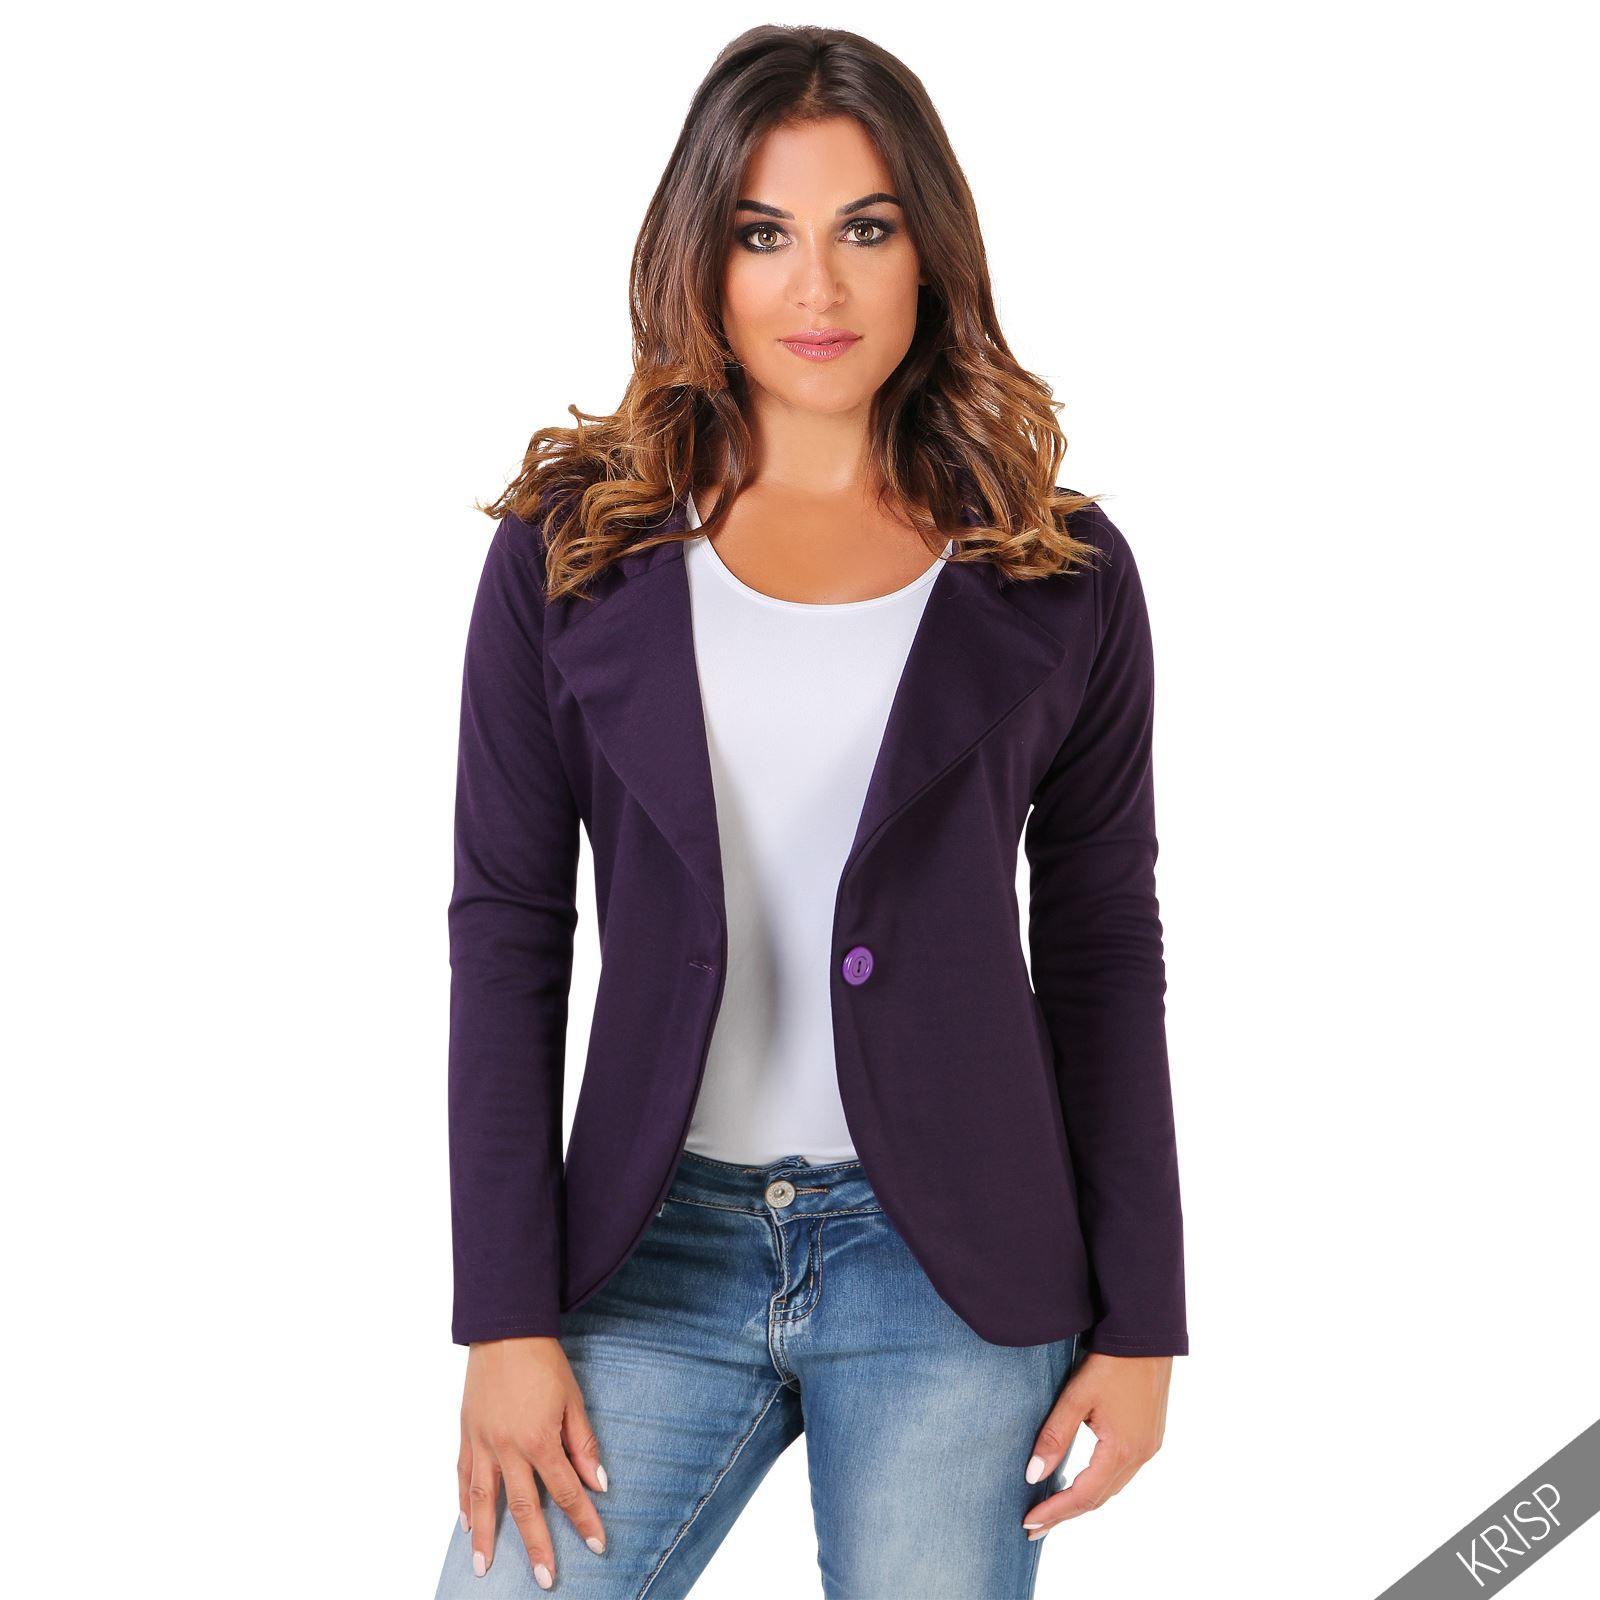 954c456970a5c Details about KRISP Womens Slim Fit Casual Smart Jersey Blazer ...